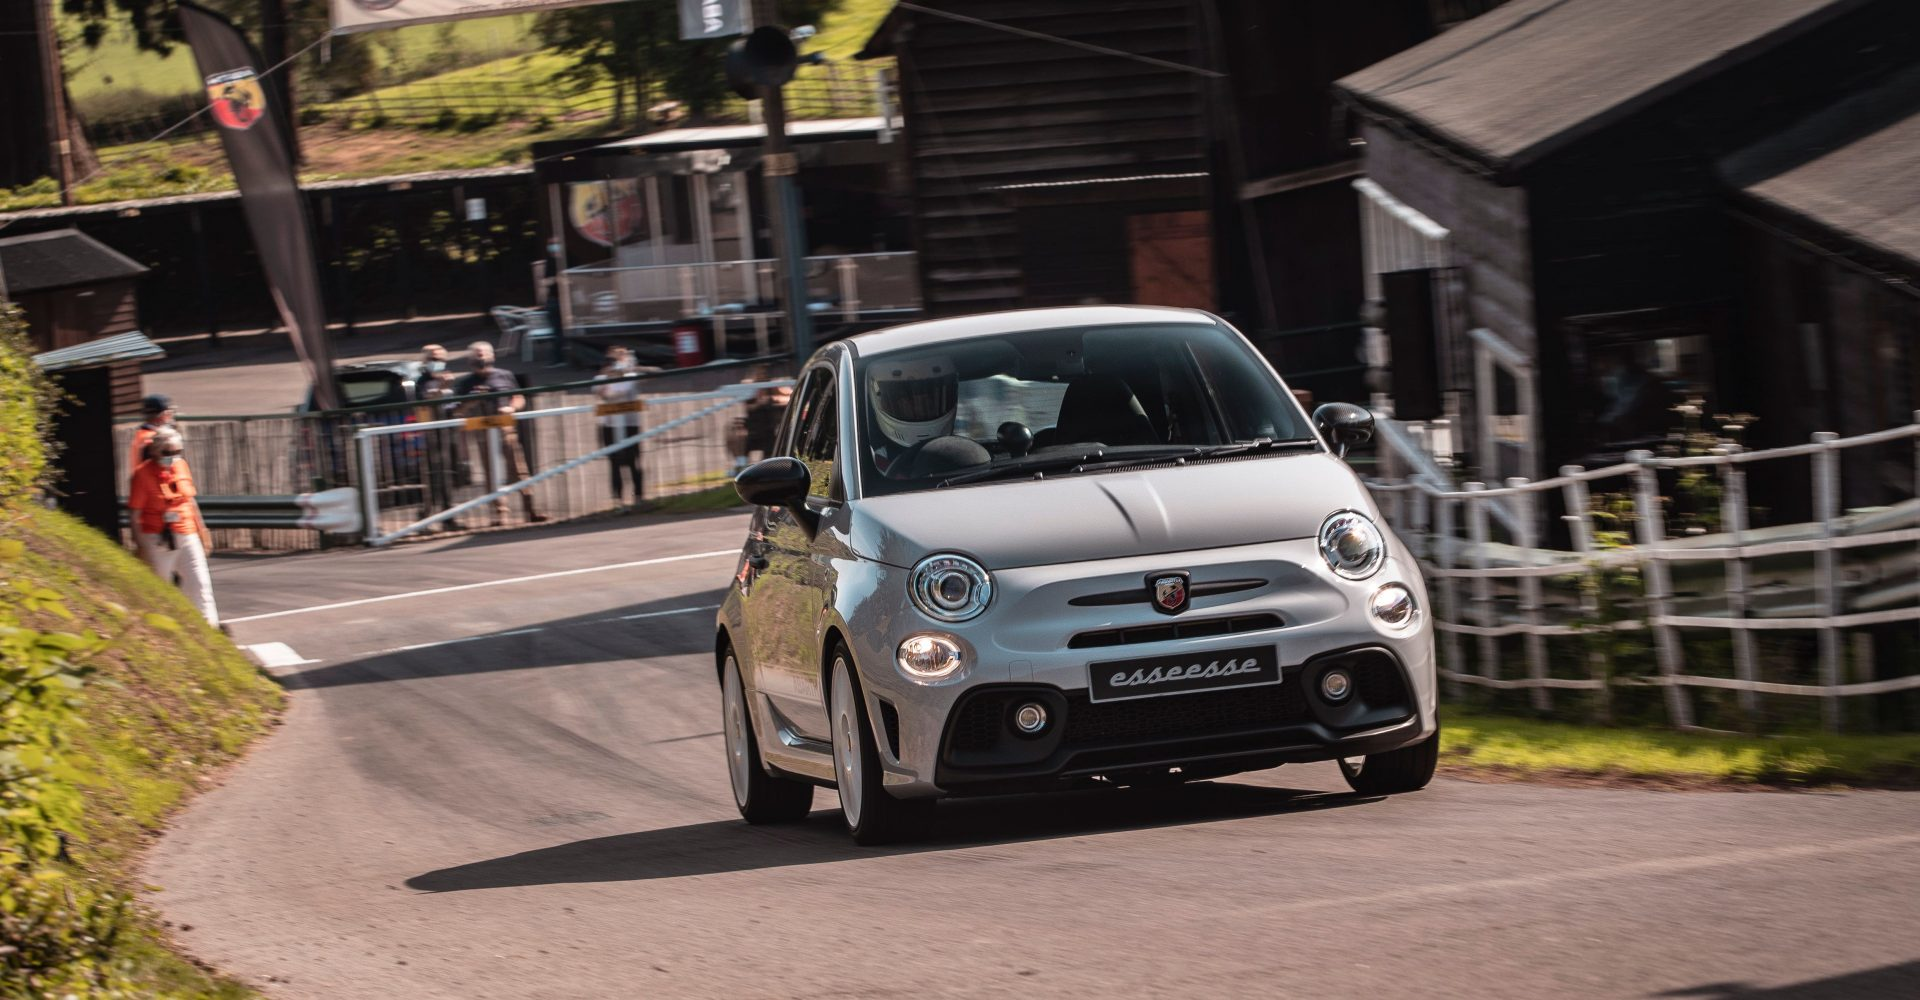 Tackling the Shelsley Walsh hillclimb in an Abarth. What could go wrong?